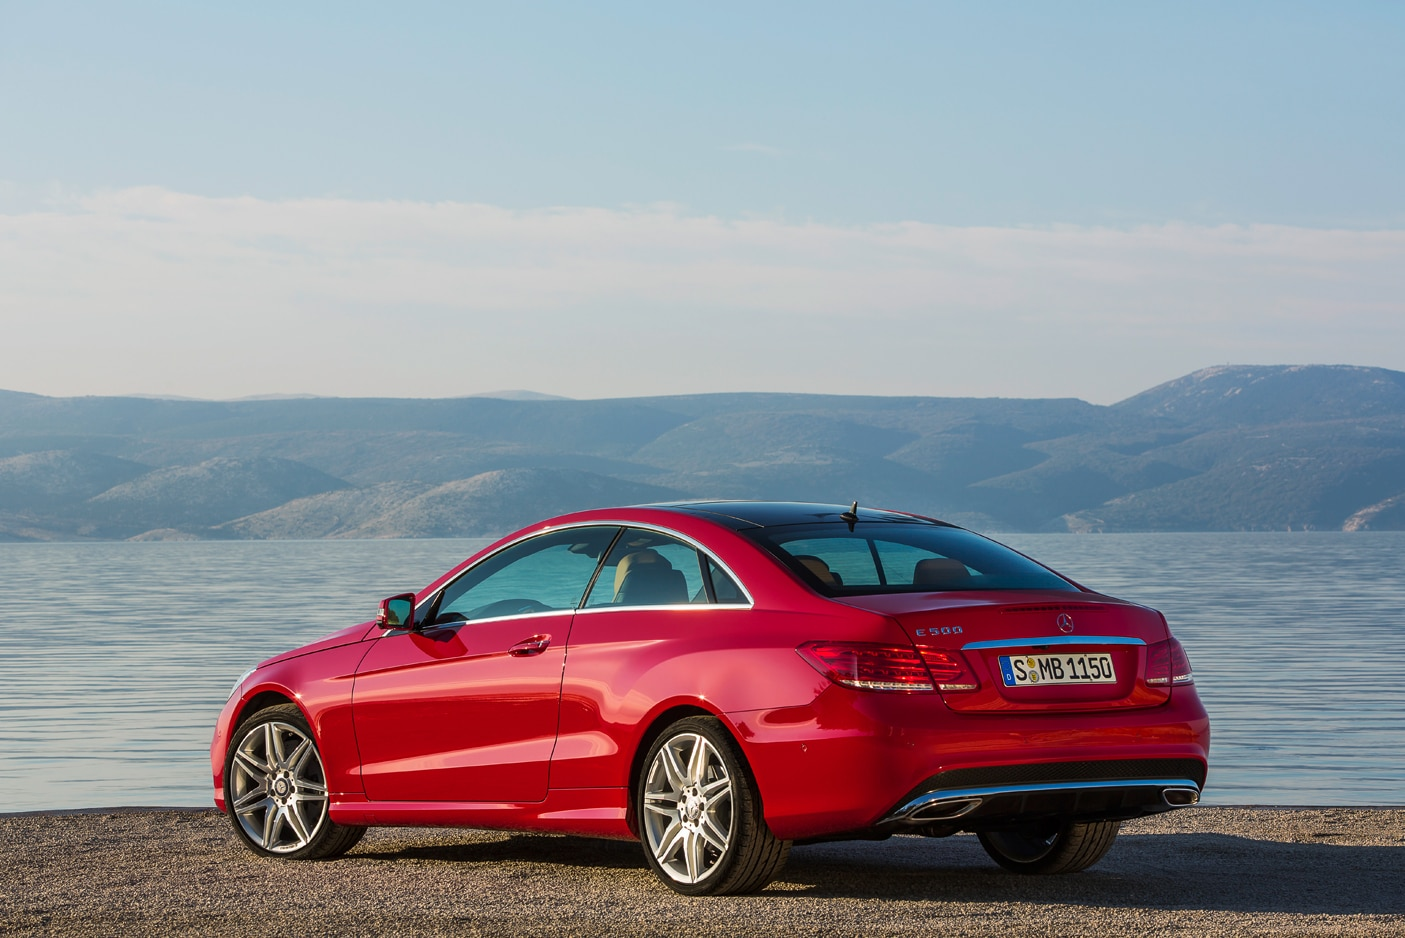 First Look 2014 MercedesBenz EClass Coupe and Cabriolet